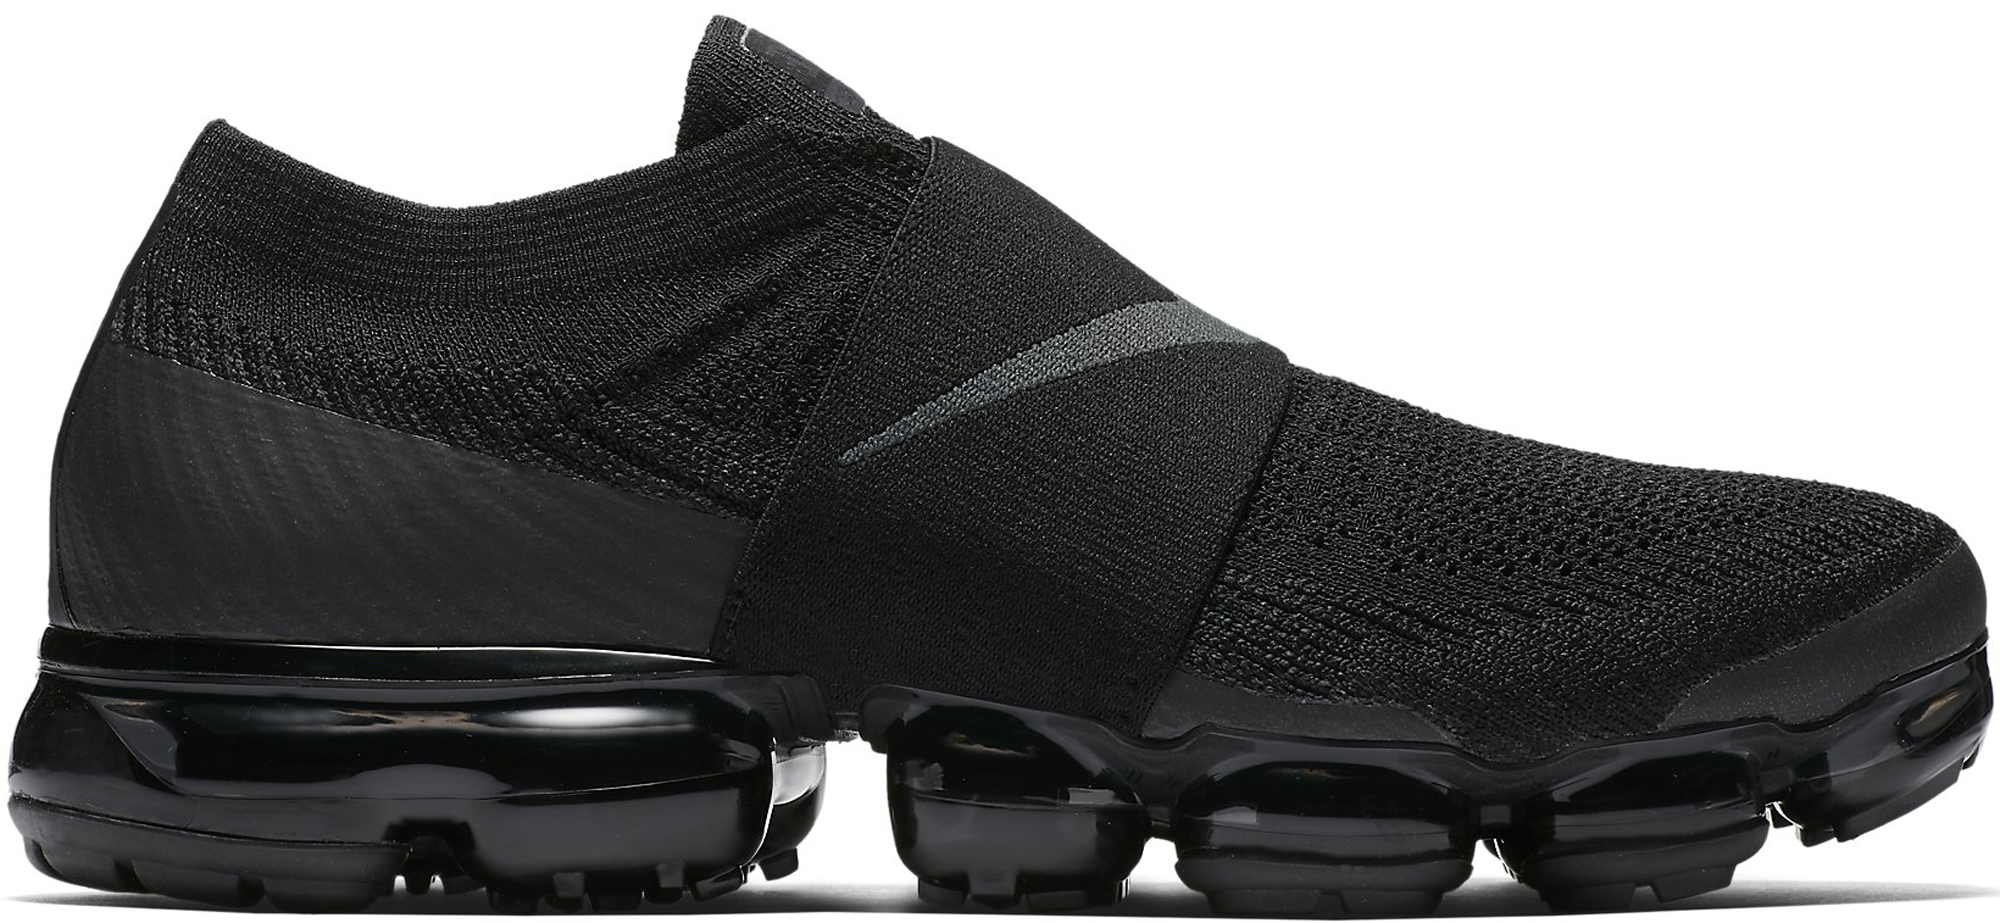 Nike Air VaporMax Flyknit Moc Triple Black